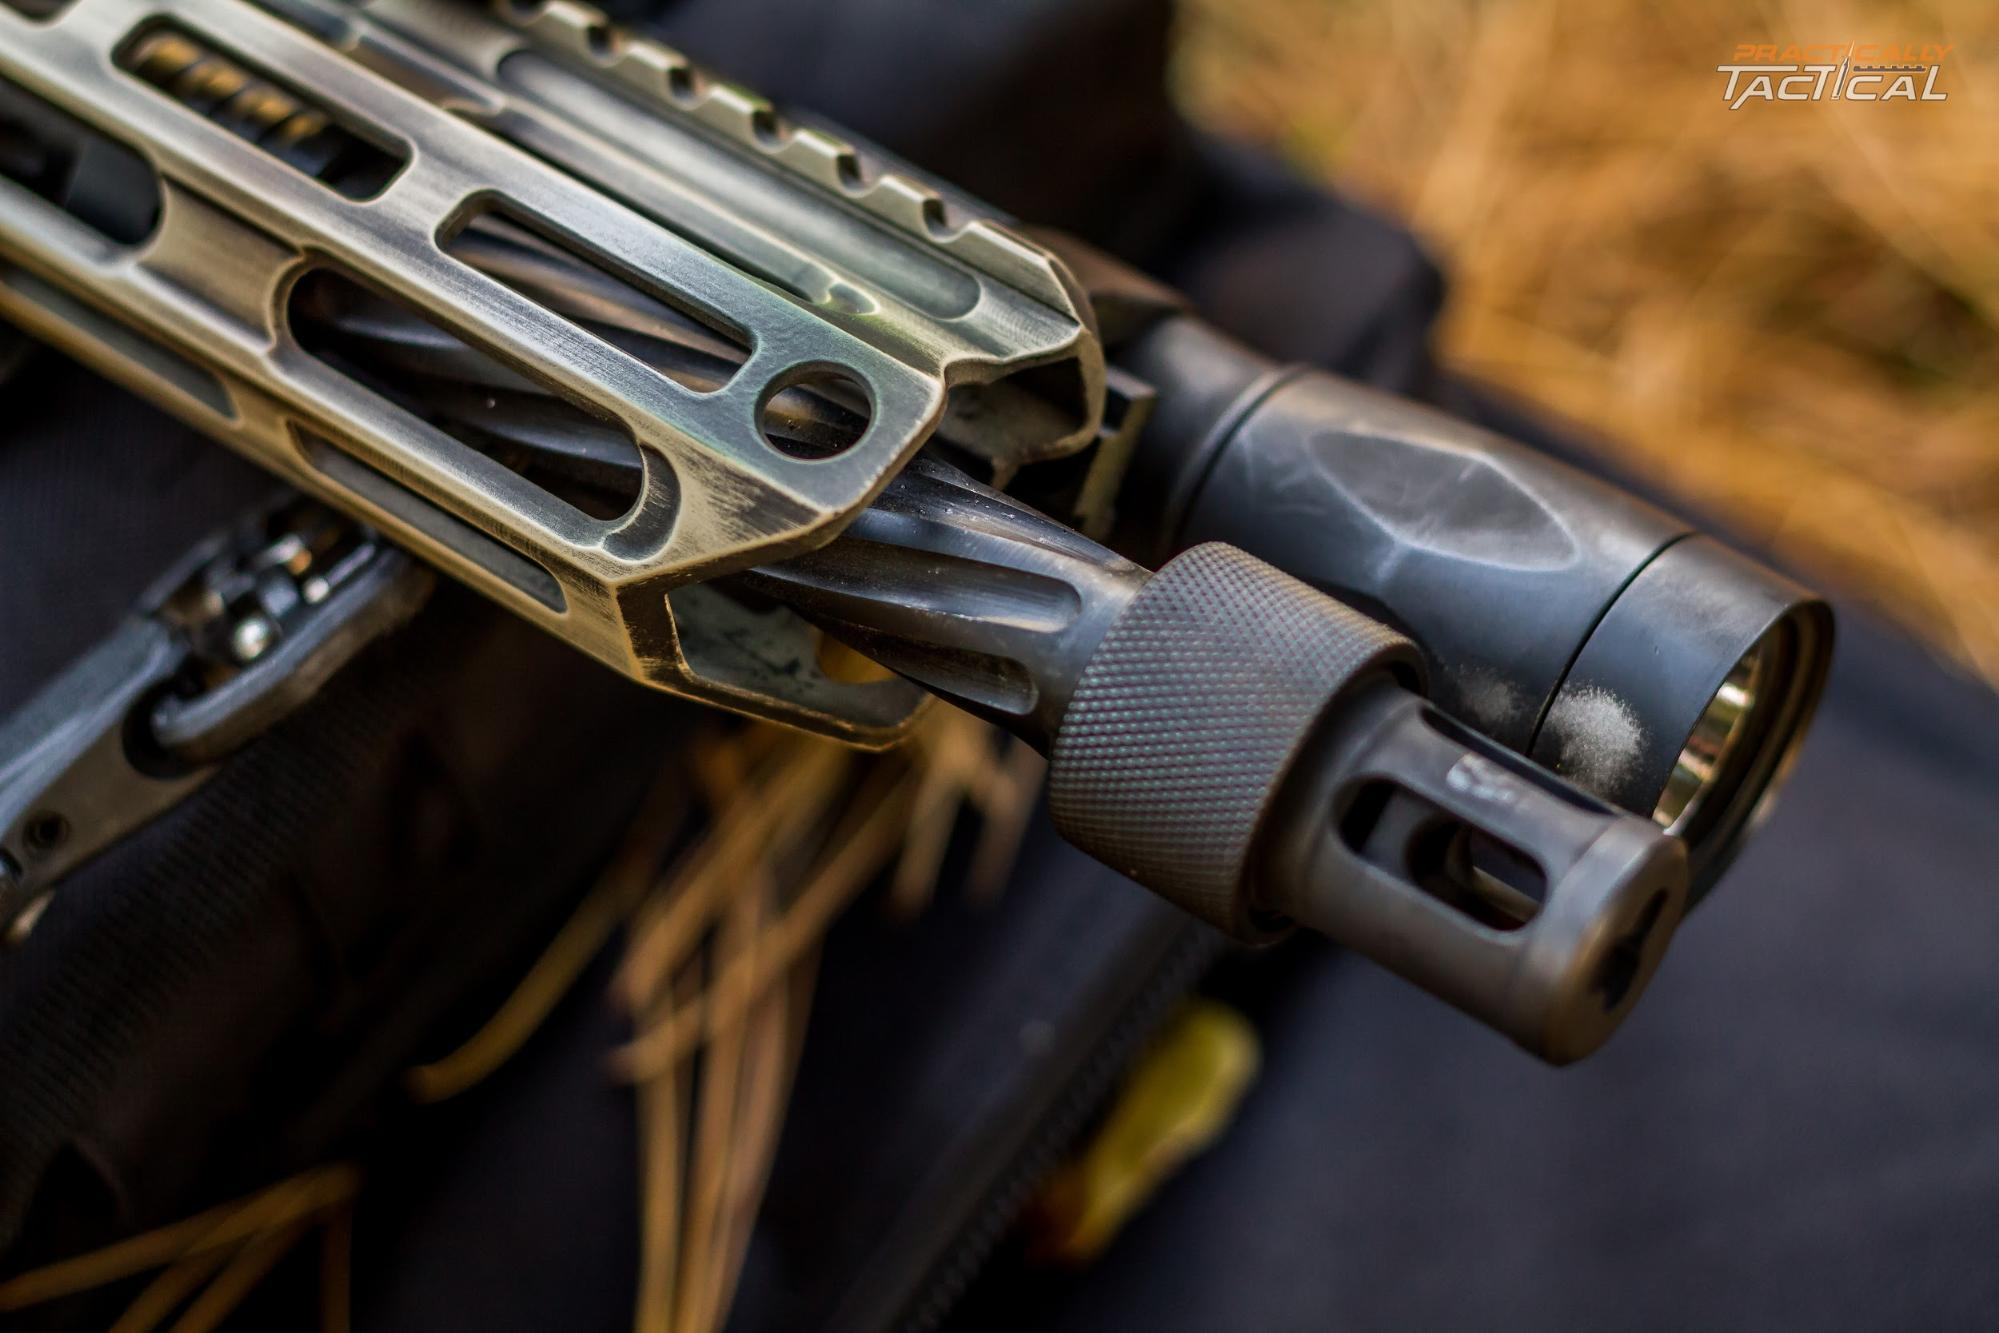 The spiral fluting on the barrel helps to dissipate heat and reduces weight.